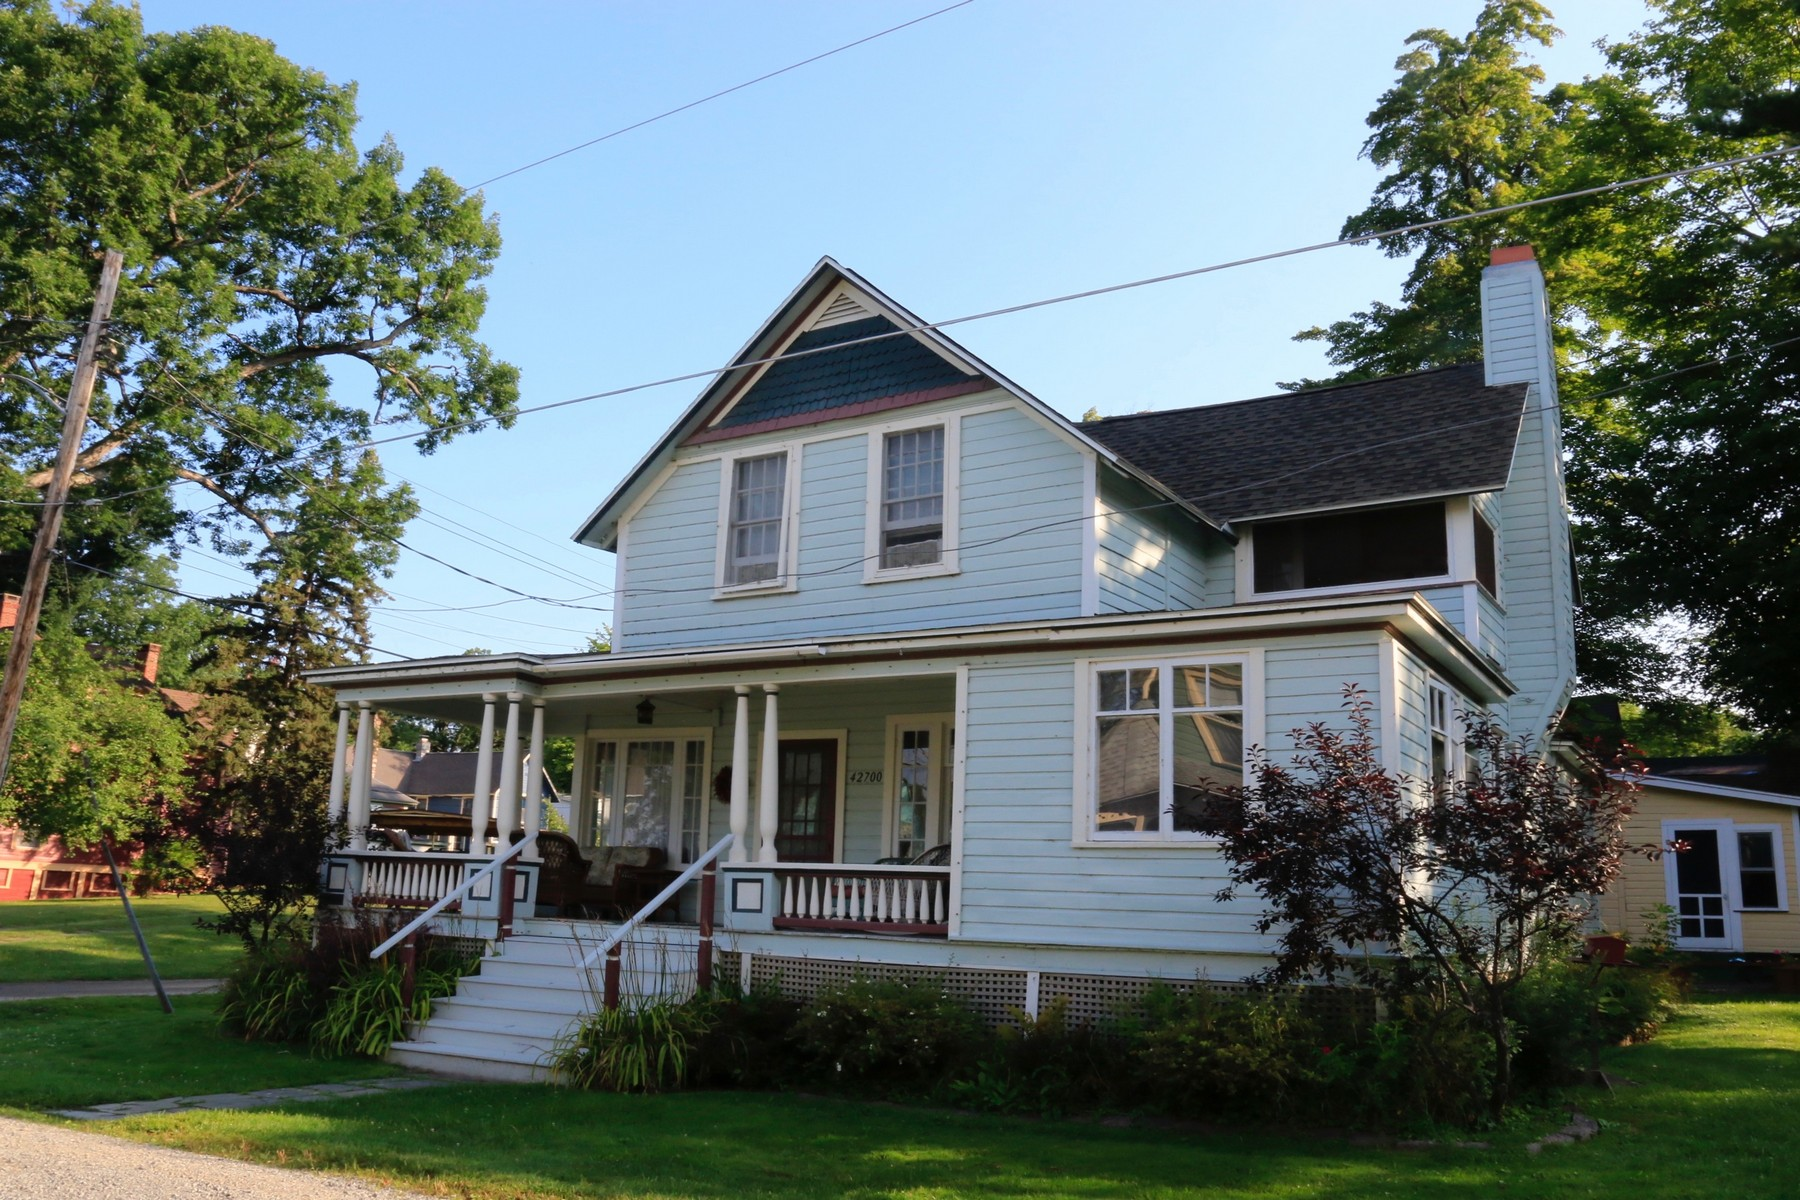 Single Family Home for Sale at Thousand Island Park 151 Ontario Ave Thousand Island Park, New York 13692 United States